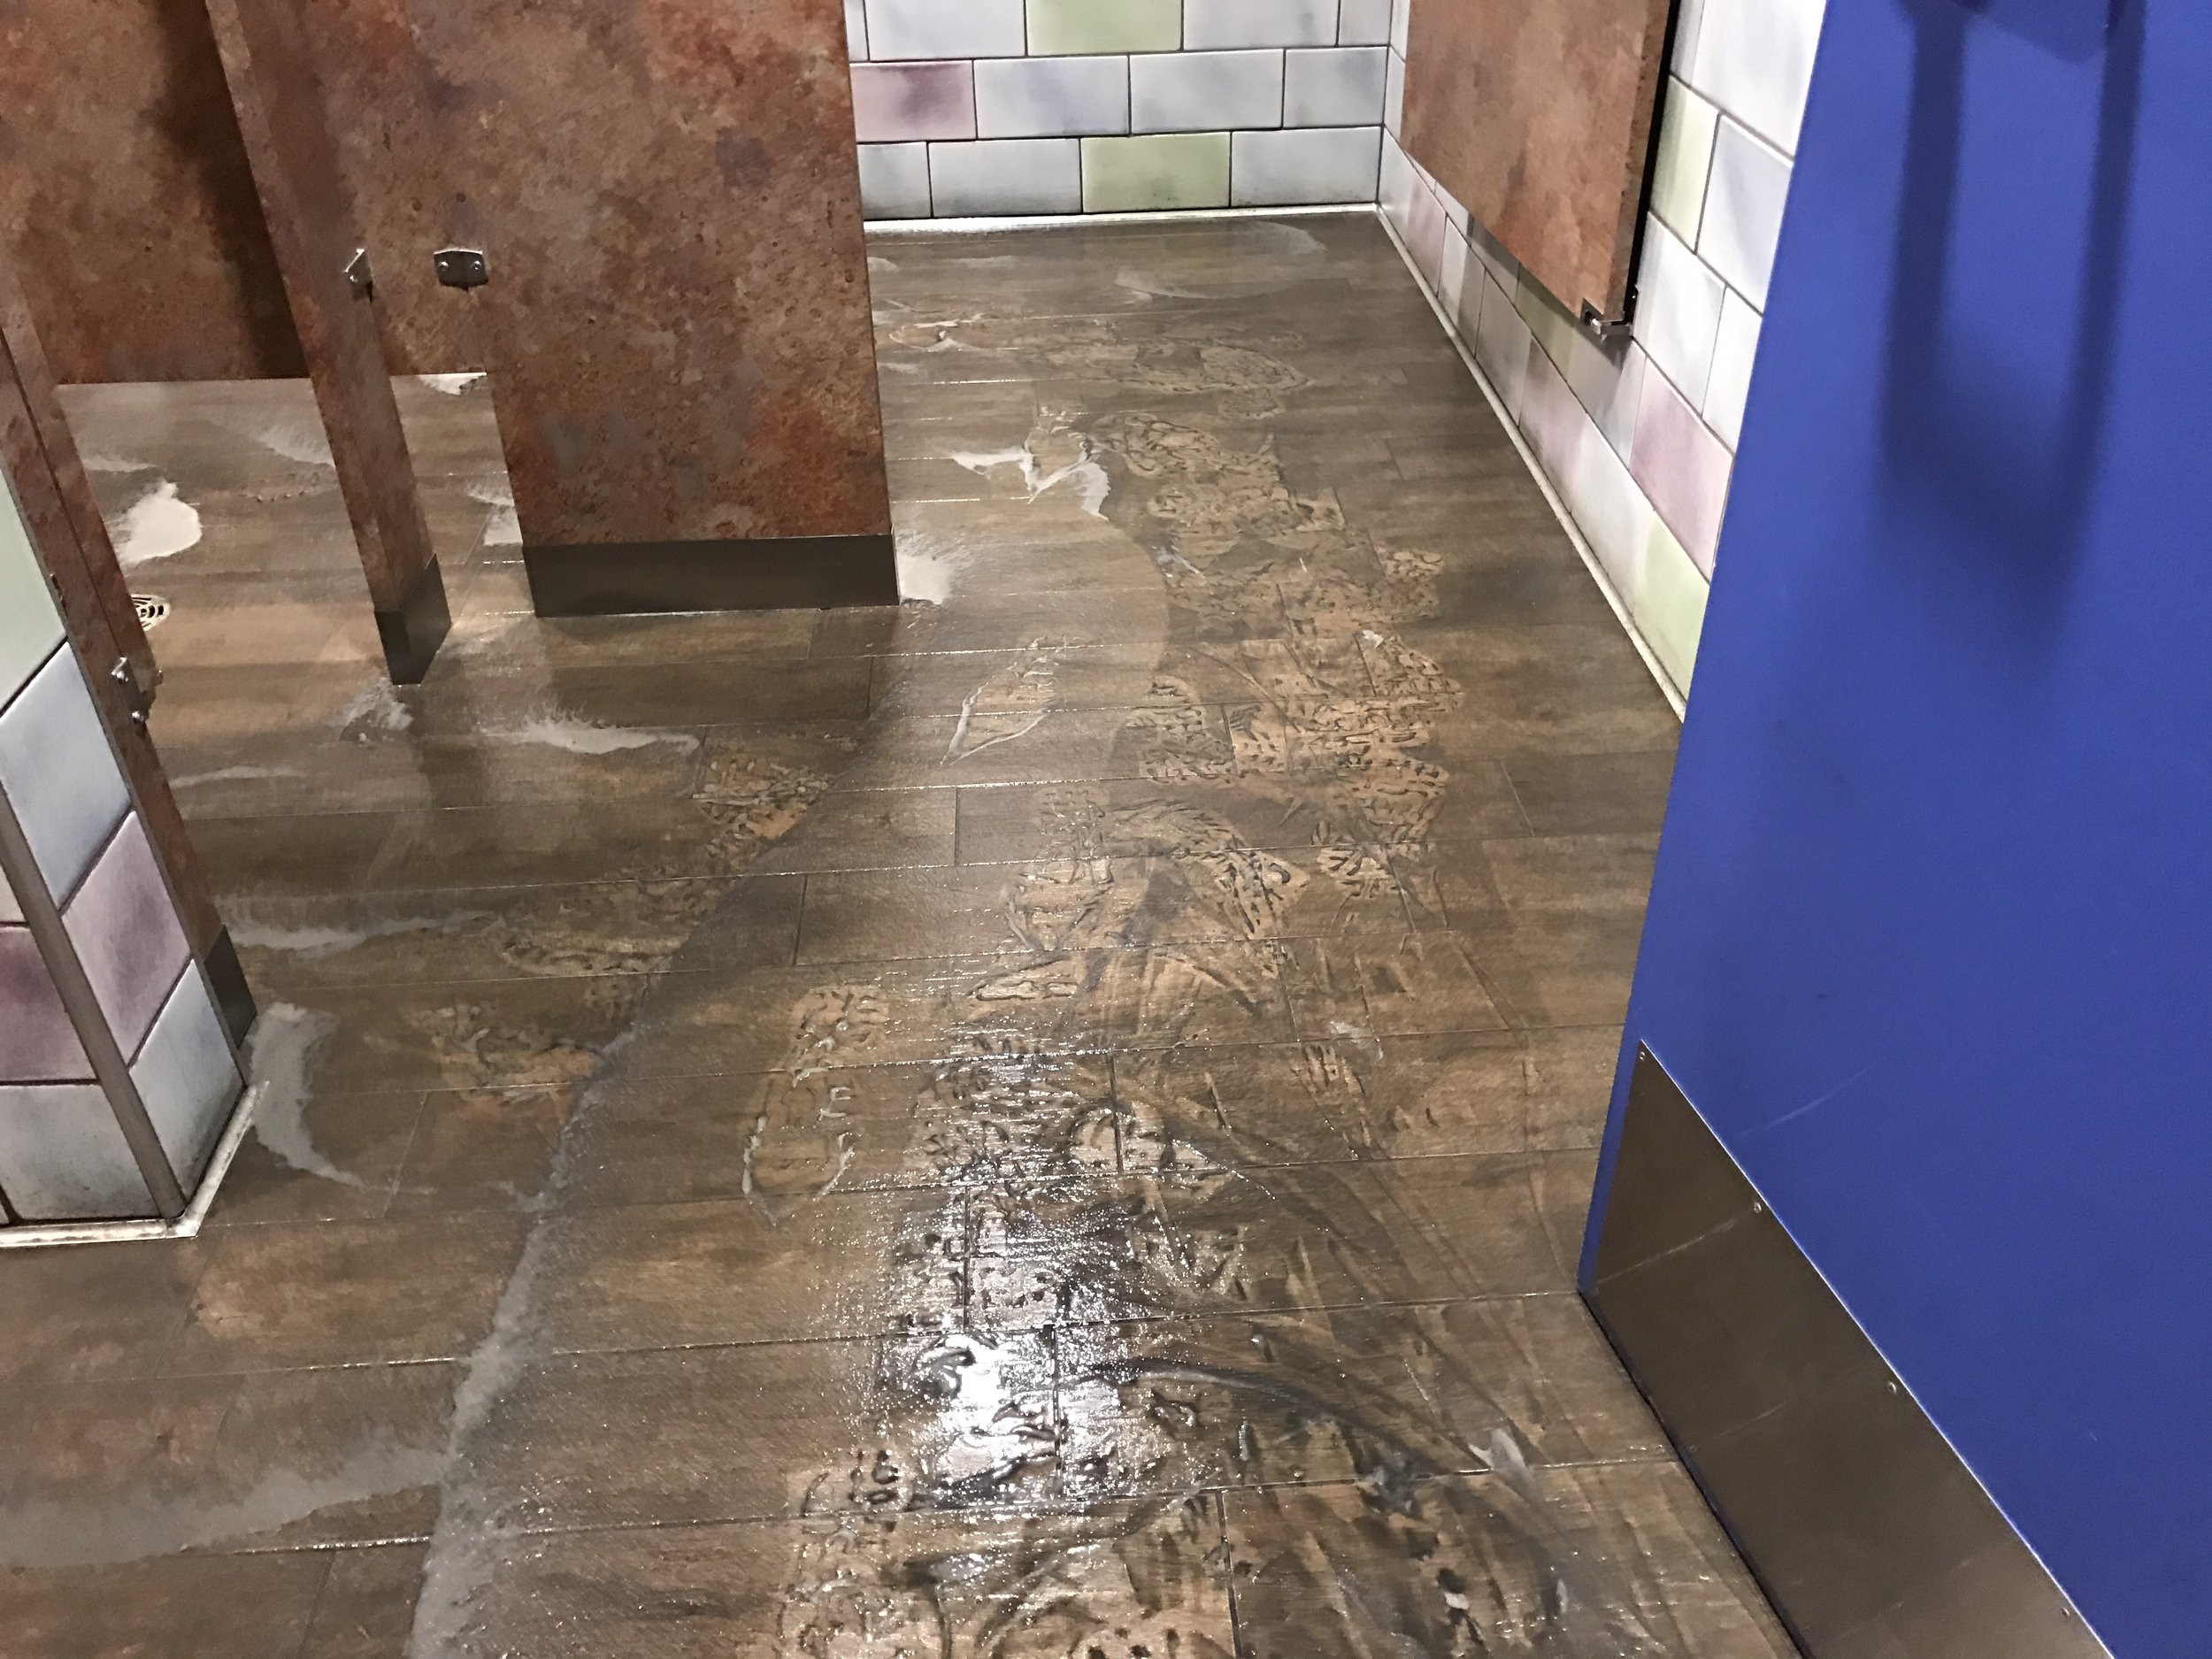 Solution applied and floor scrubbed.